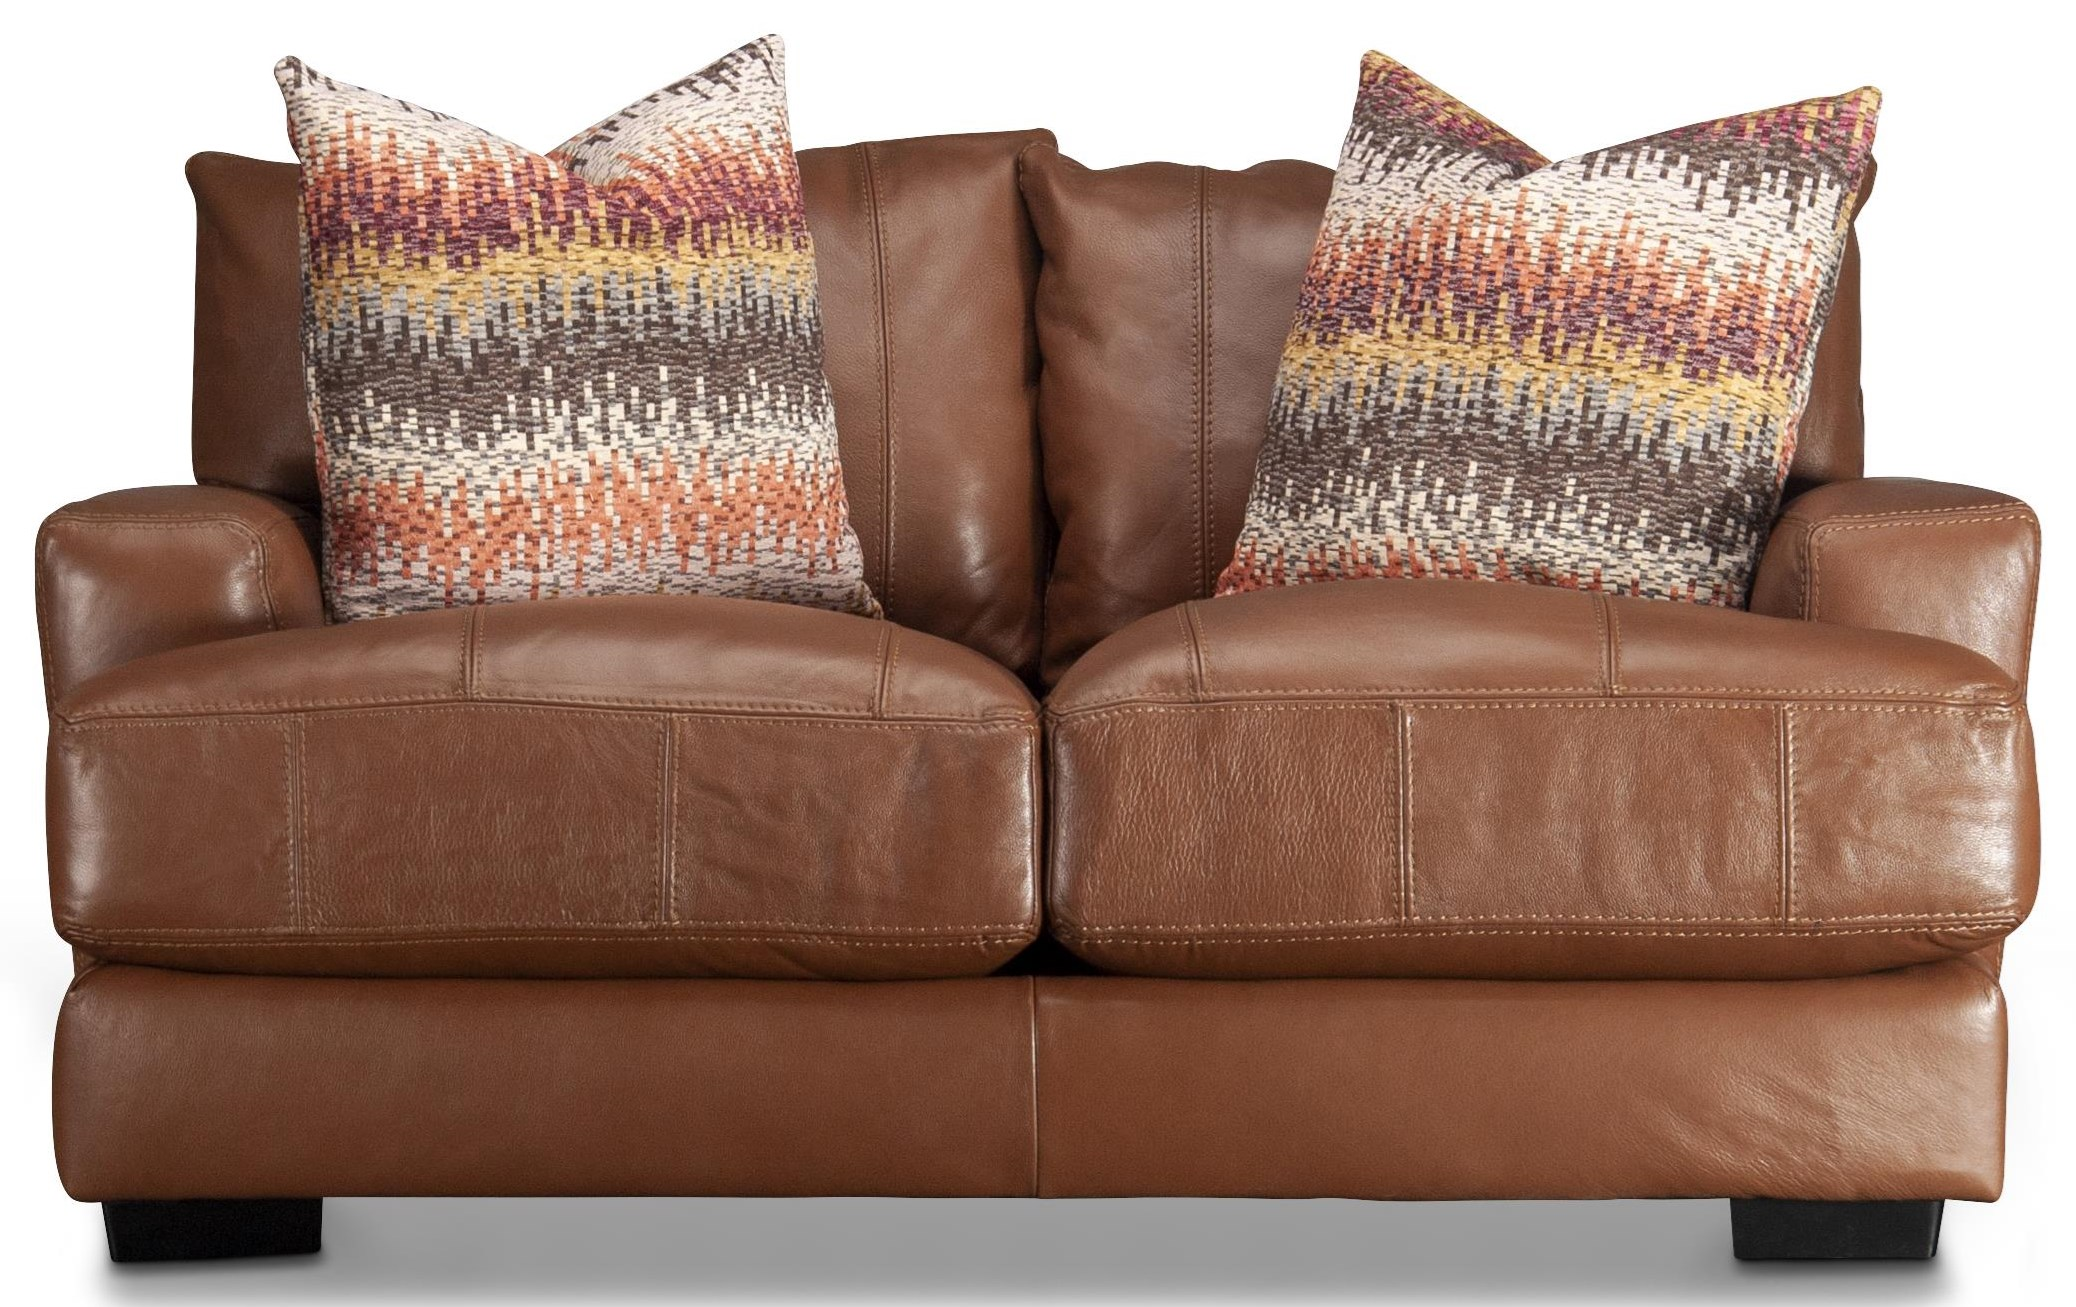 Blair Blair Leather Match Loveseat by Franklin at Morris Home